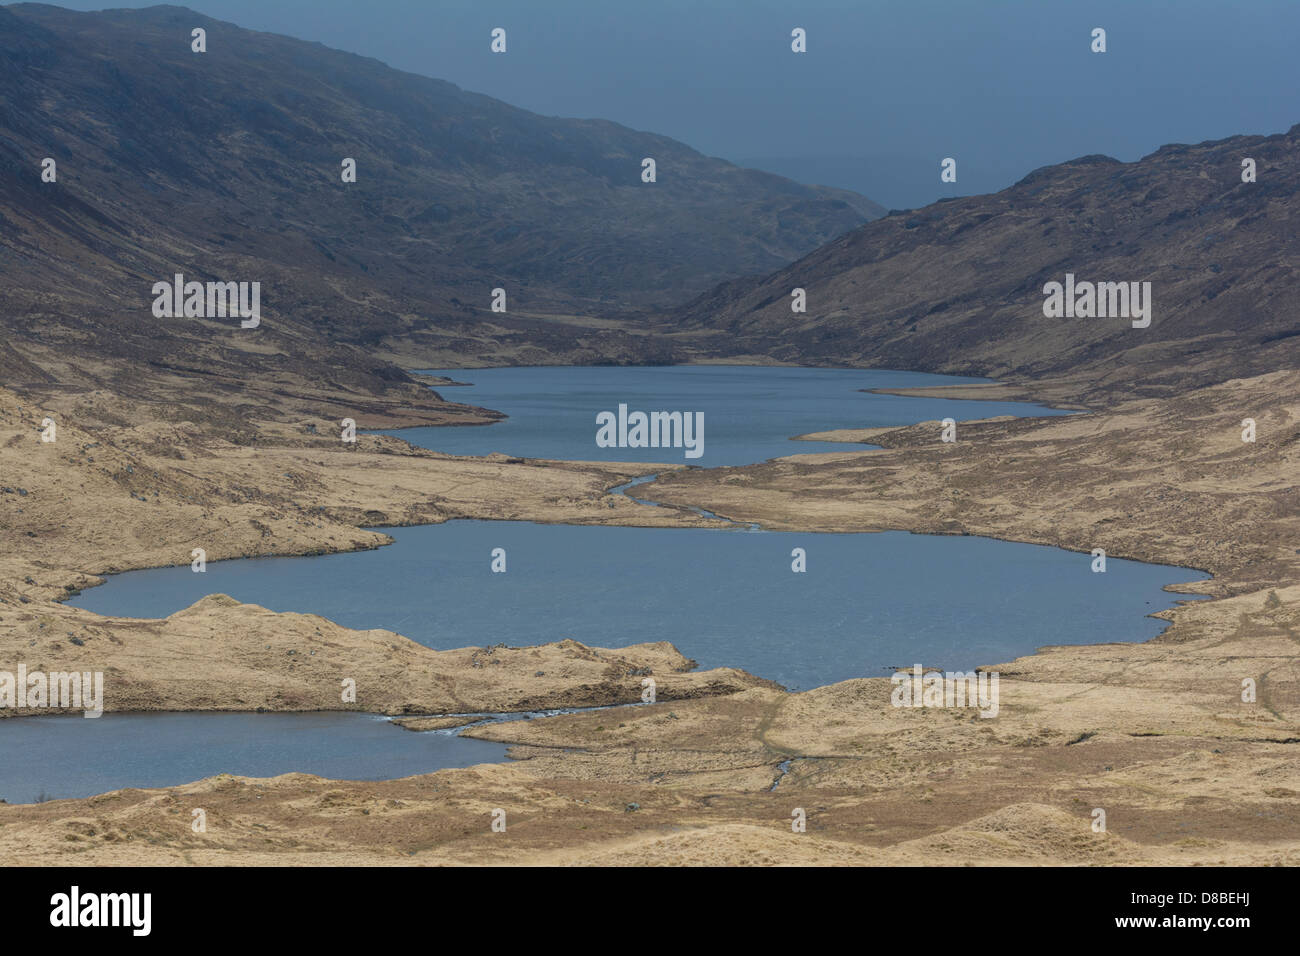 View of Loch an Eilein at front left, Loch an Ellen, center, and Loch Airdglais in distance, Isle of Mull, inner - Stock Image